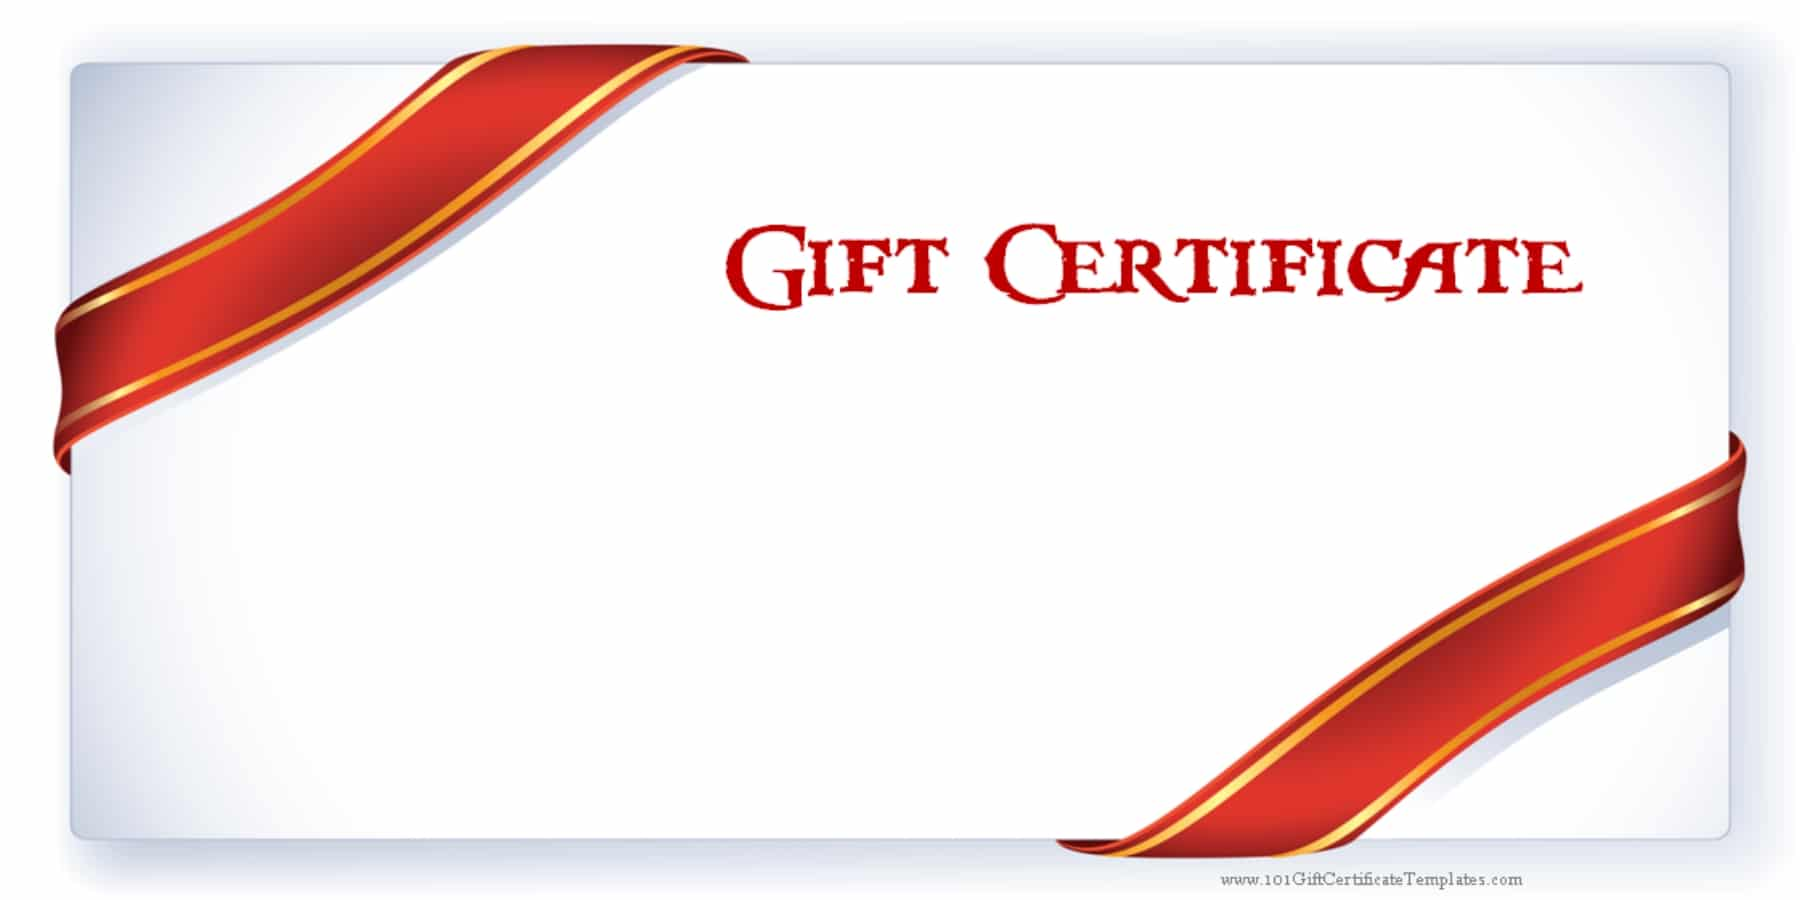 Printable Gift Certificate Templates – Template for a Voucher